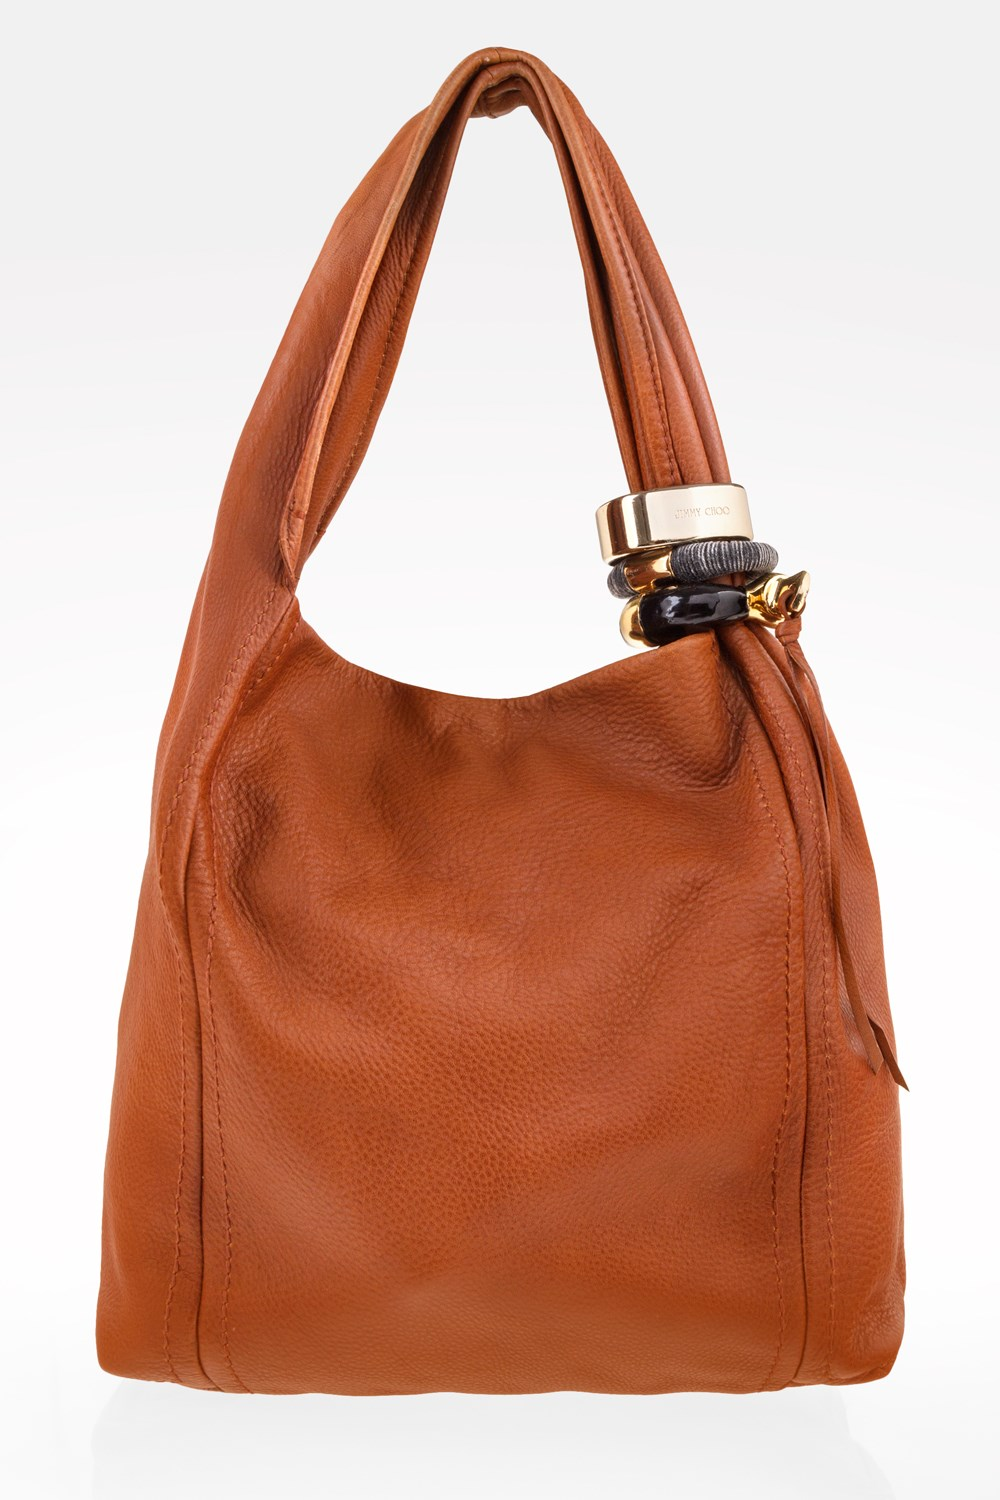 Tan Saba Large Leather Hobo Bag, Shoulder Bags, Buy Handbags, Bags ... 7216d3bb48